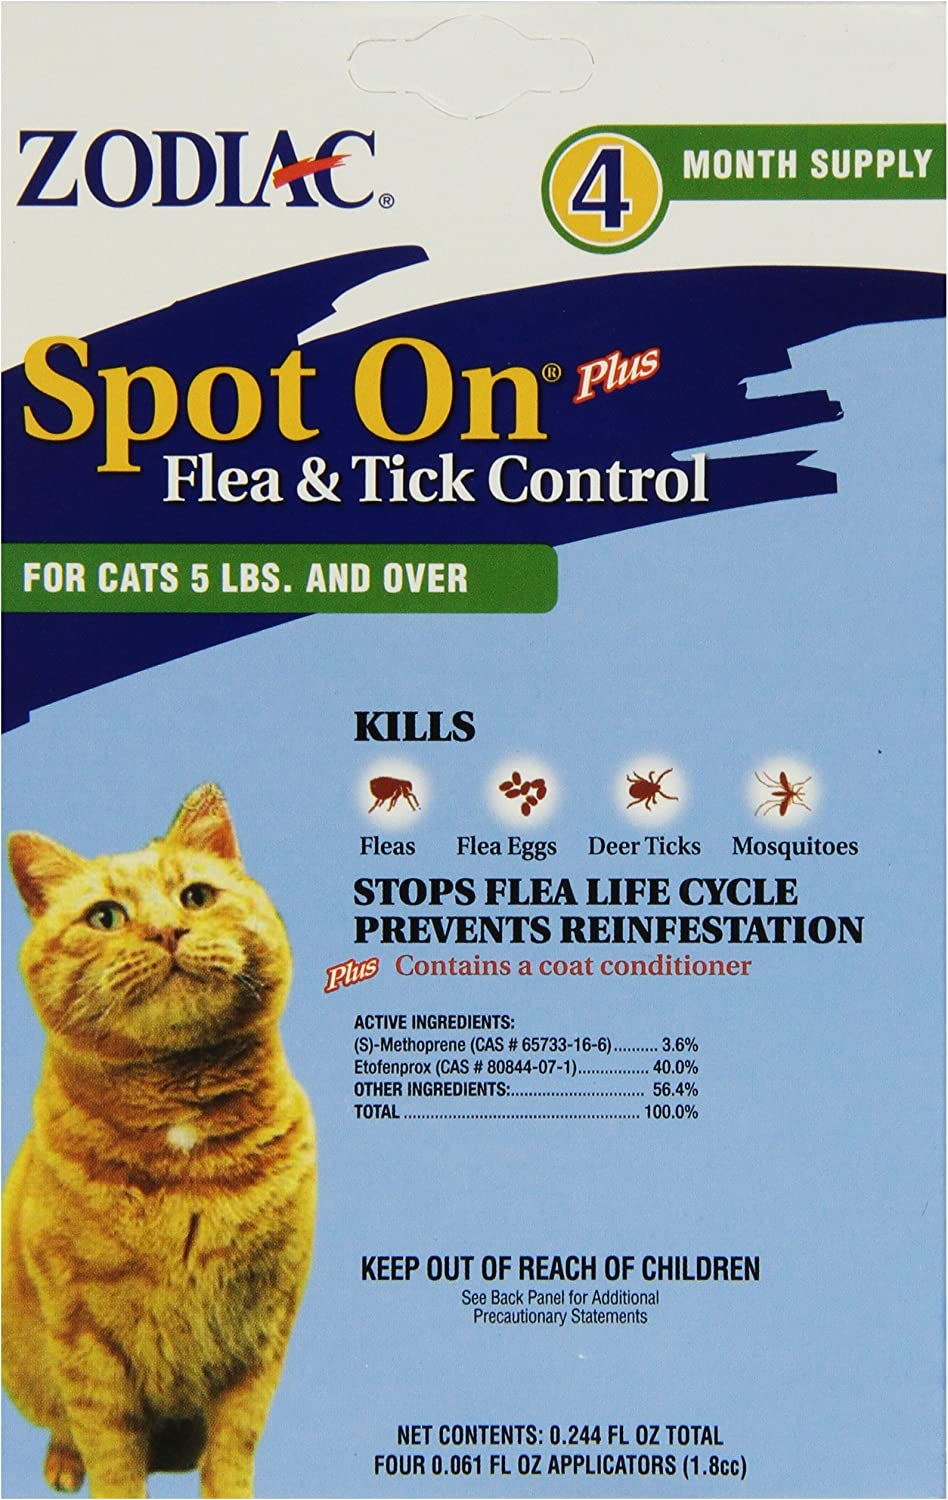 B000HCLK1E Zodiac Spot On for Cats and Kittens 91UsnFJbZiL